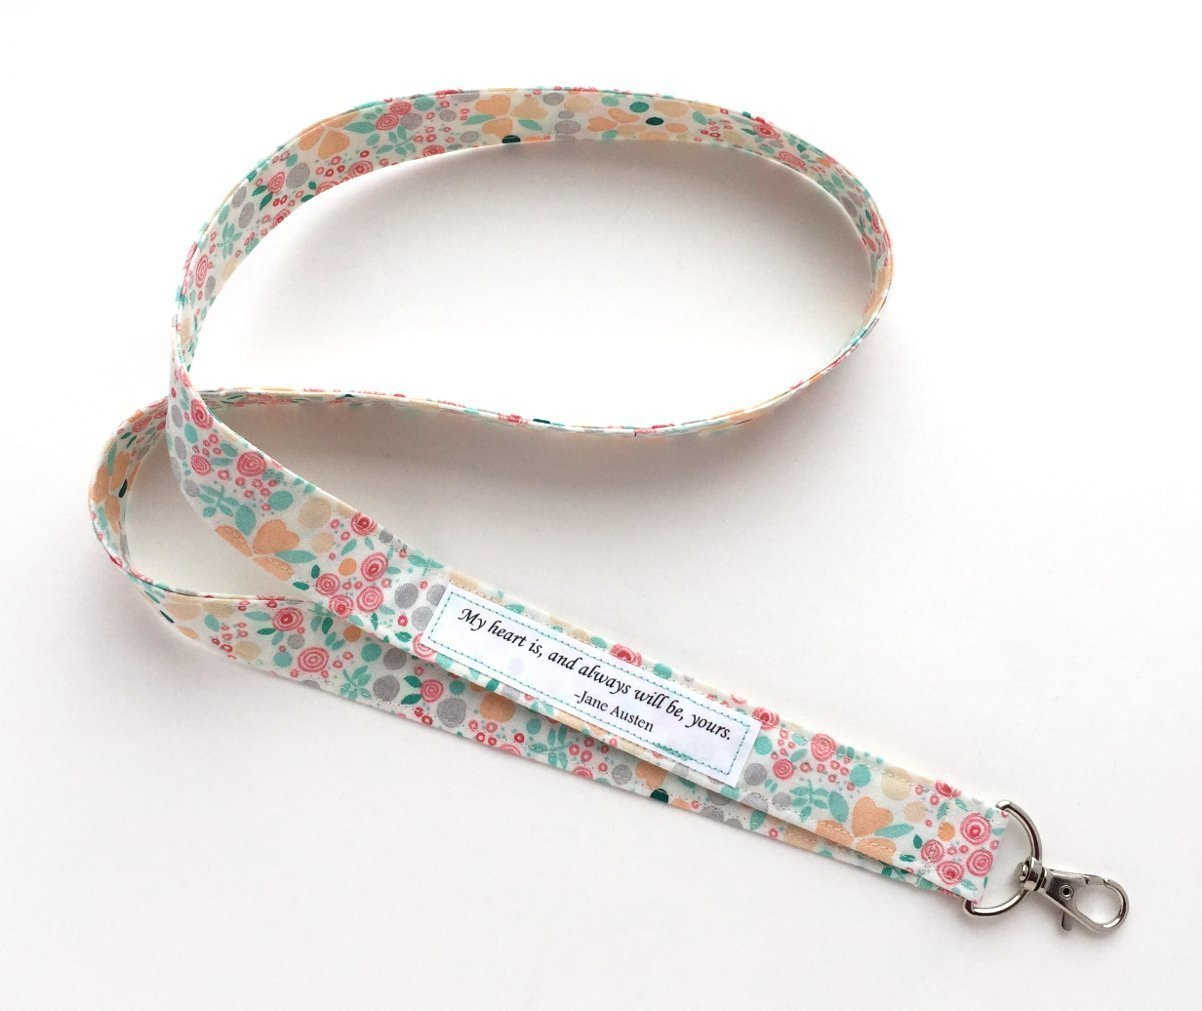 Fabric Lanyard with Jane Austen quote My Heart is Yours - Keychain, USB, ID Name Badge Holder - Organic